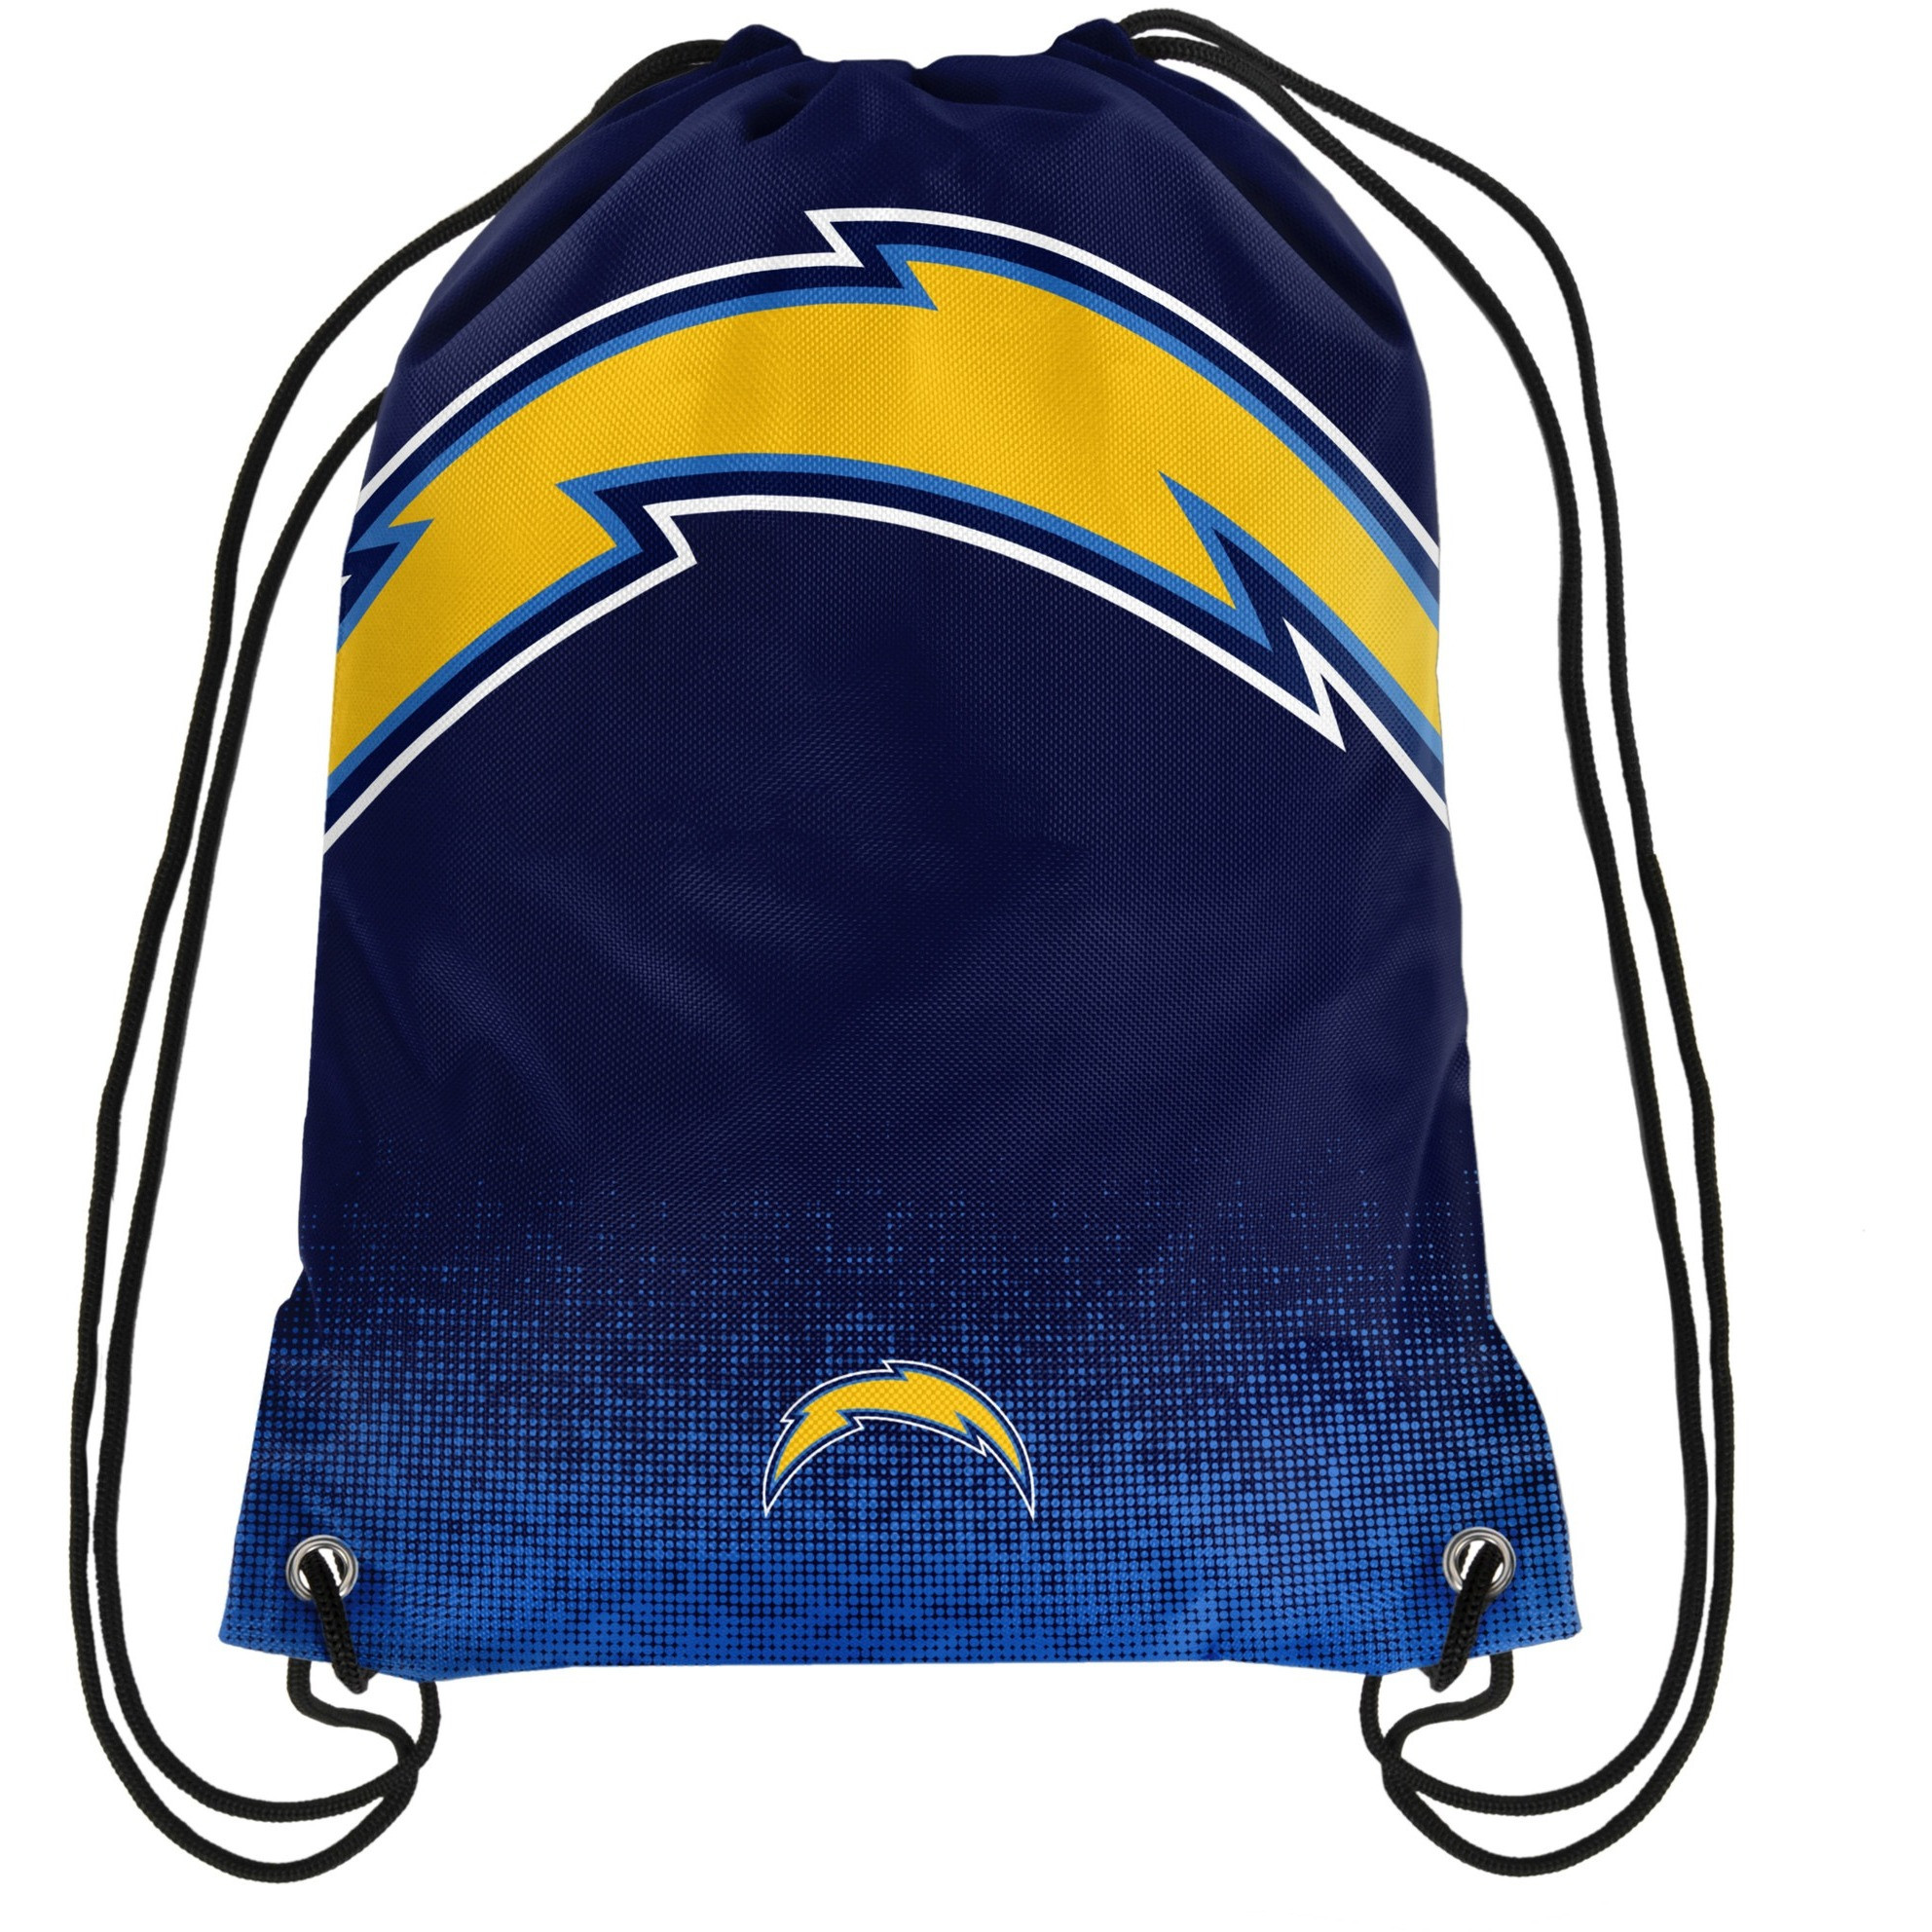 San Diego Chargers NFL Gradient Drawstring Backpack